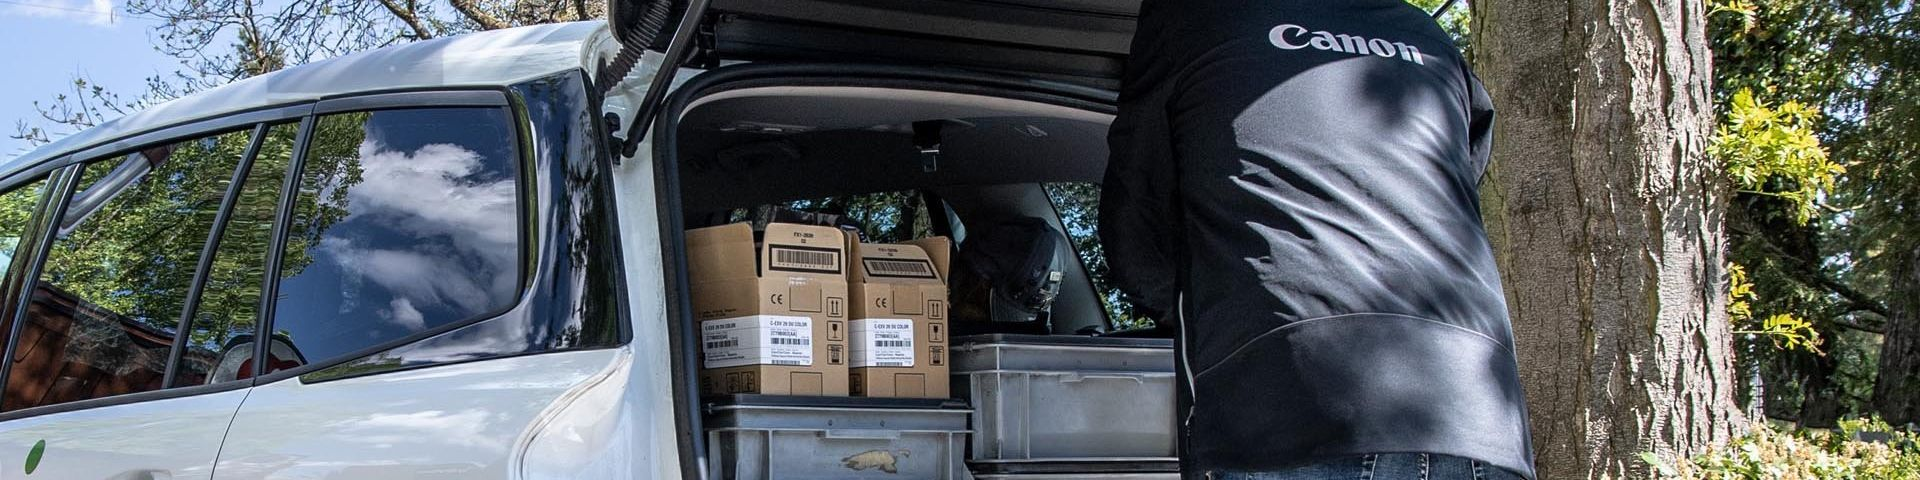 A Canon Service Engineer in a branded jacket unloads their equipment from the back of a white estate vehicle.